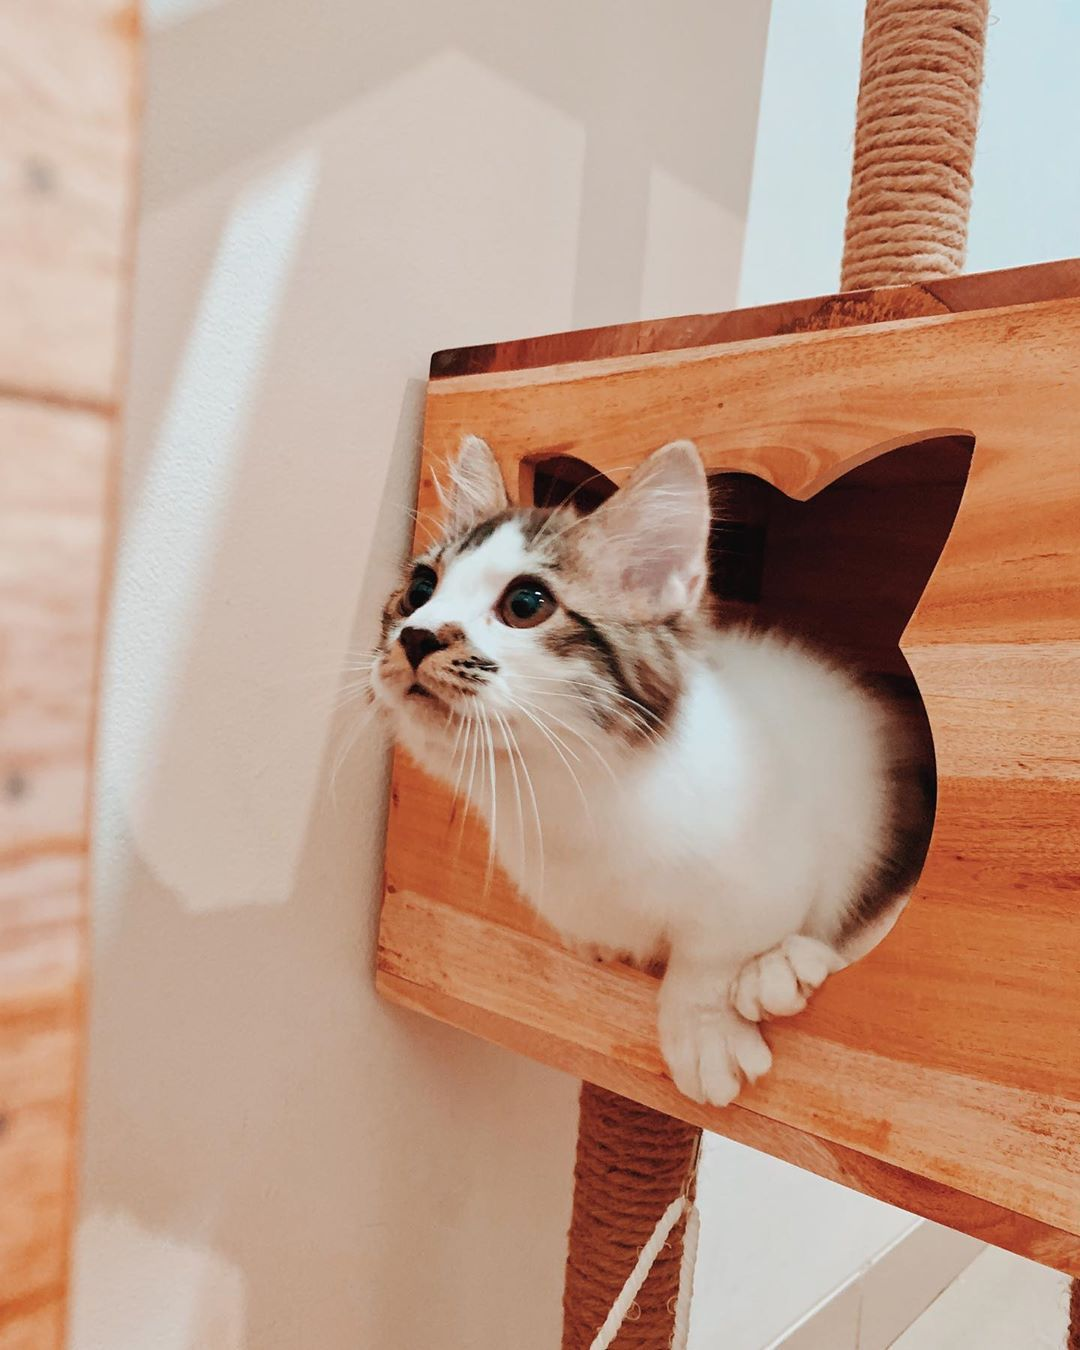 Itu Qimmy Beneran Bukan Sih Cat Cats Catsofinstagram Cats Of Instagram Cats Of World Cat Features Catlover Munchkin Kitten Cat Day Cats And Kittens